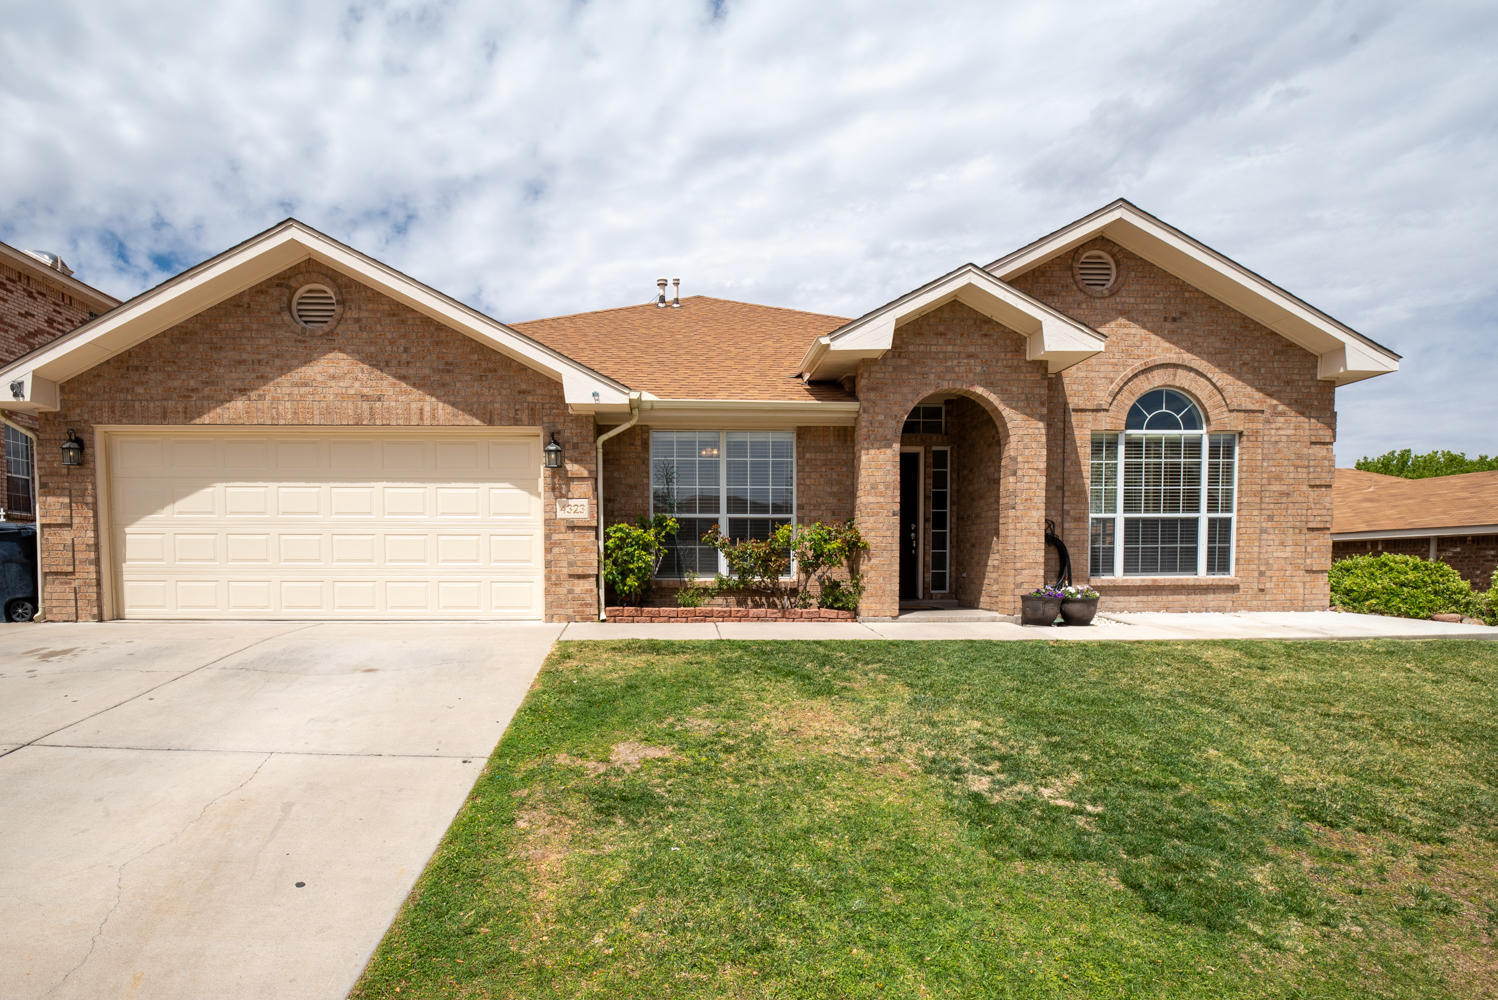 Beautiful Brick Opel Jenkins home in the heart of Taylor Ranch. This home has tons of upgrades. Close to shops and easy access to Paseo del Norte. The home boasts 5 bedrooms' and 3 baths as well as a large backyard. Extra parking on the side of the home for vehicles, trailers or RV.